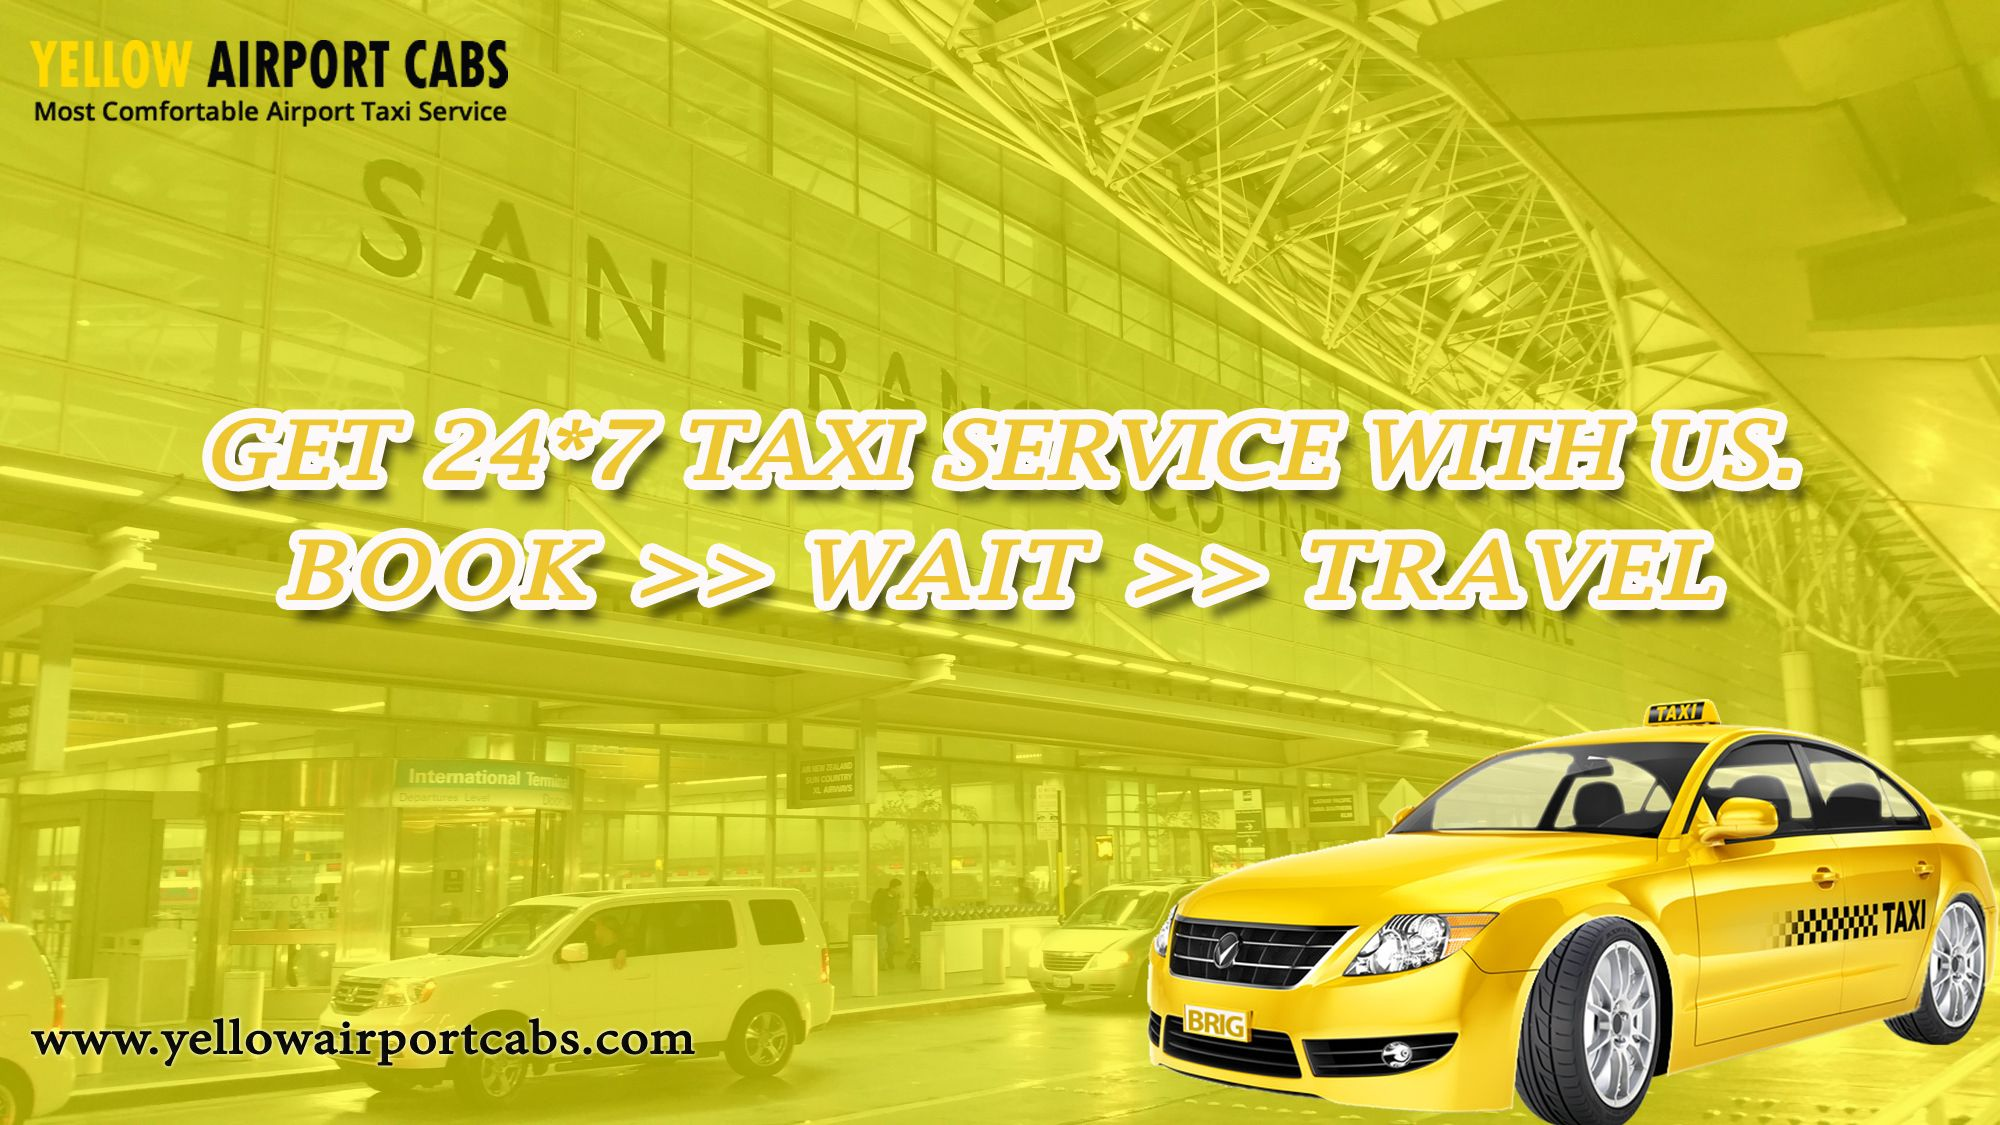 Now Getting Taxi In San Francisco Is Became Easy With Us Call Us 510 428 0202 Cabs Cabsnearme Limoservice Cabsandtax With Images Cab Yellow Taxi Cab Taxi Service